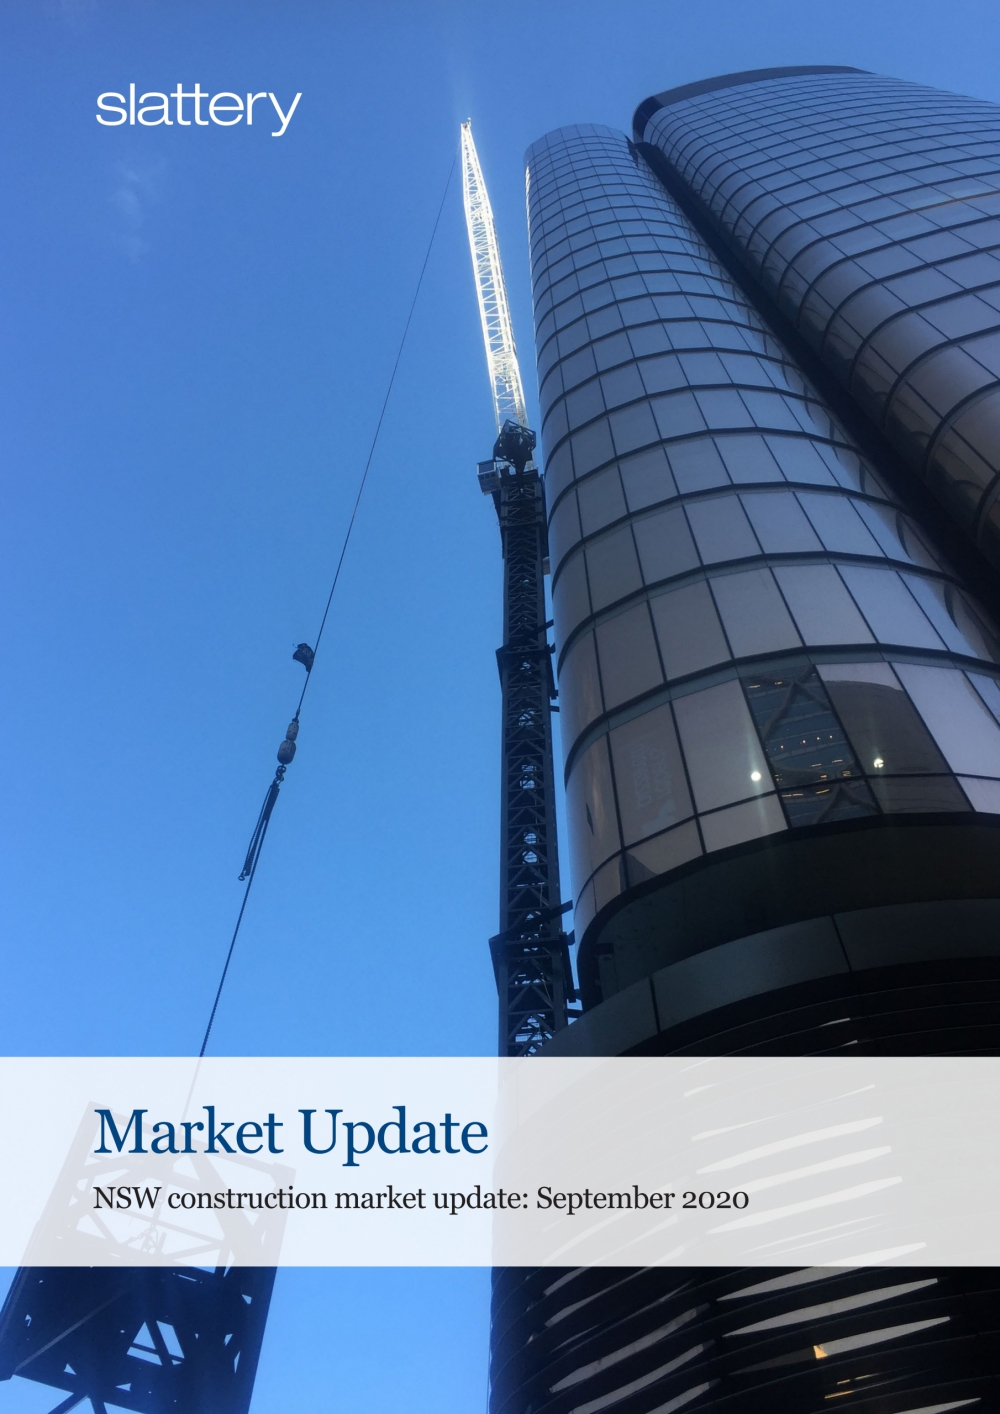 NSW construction market update: September 2020